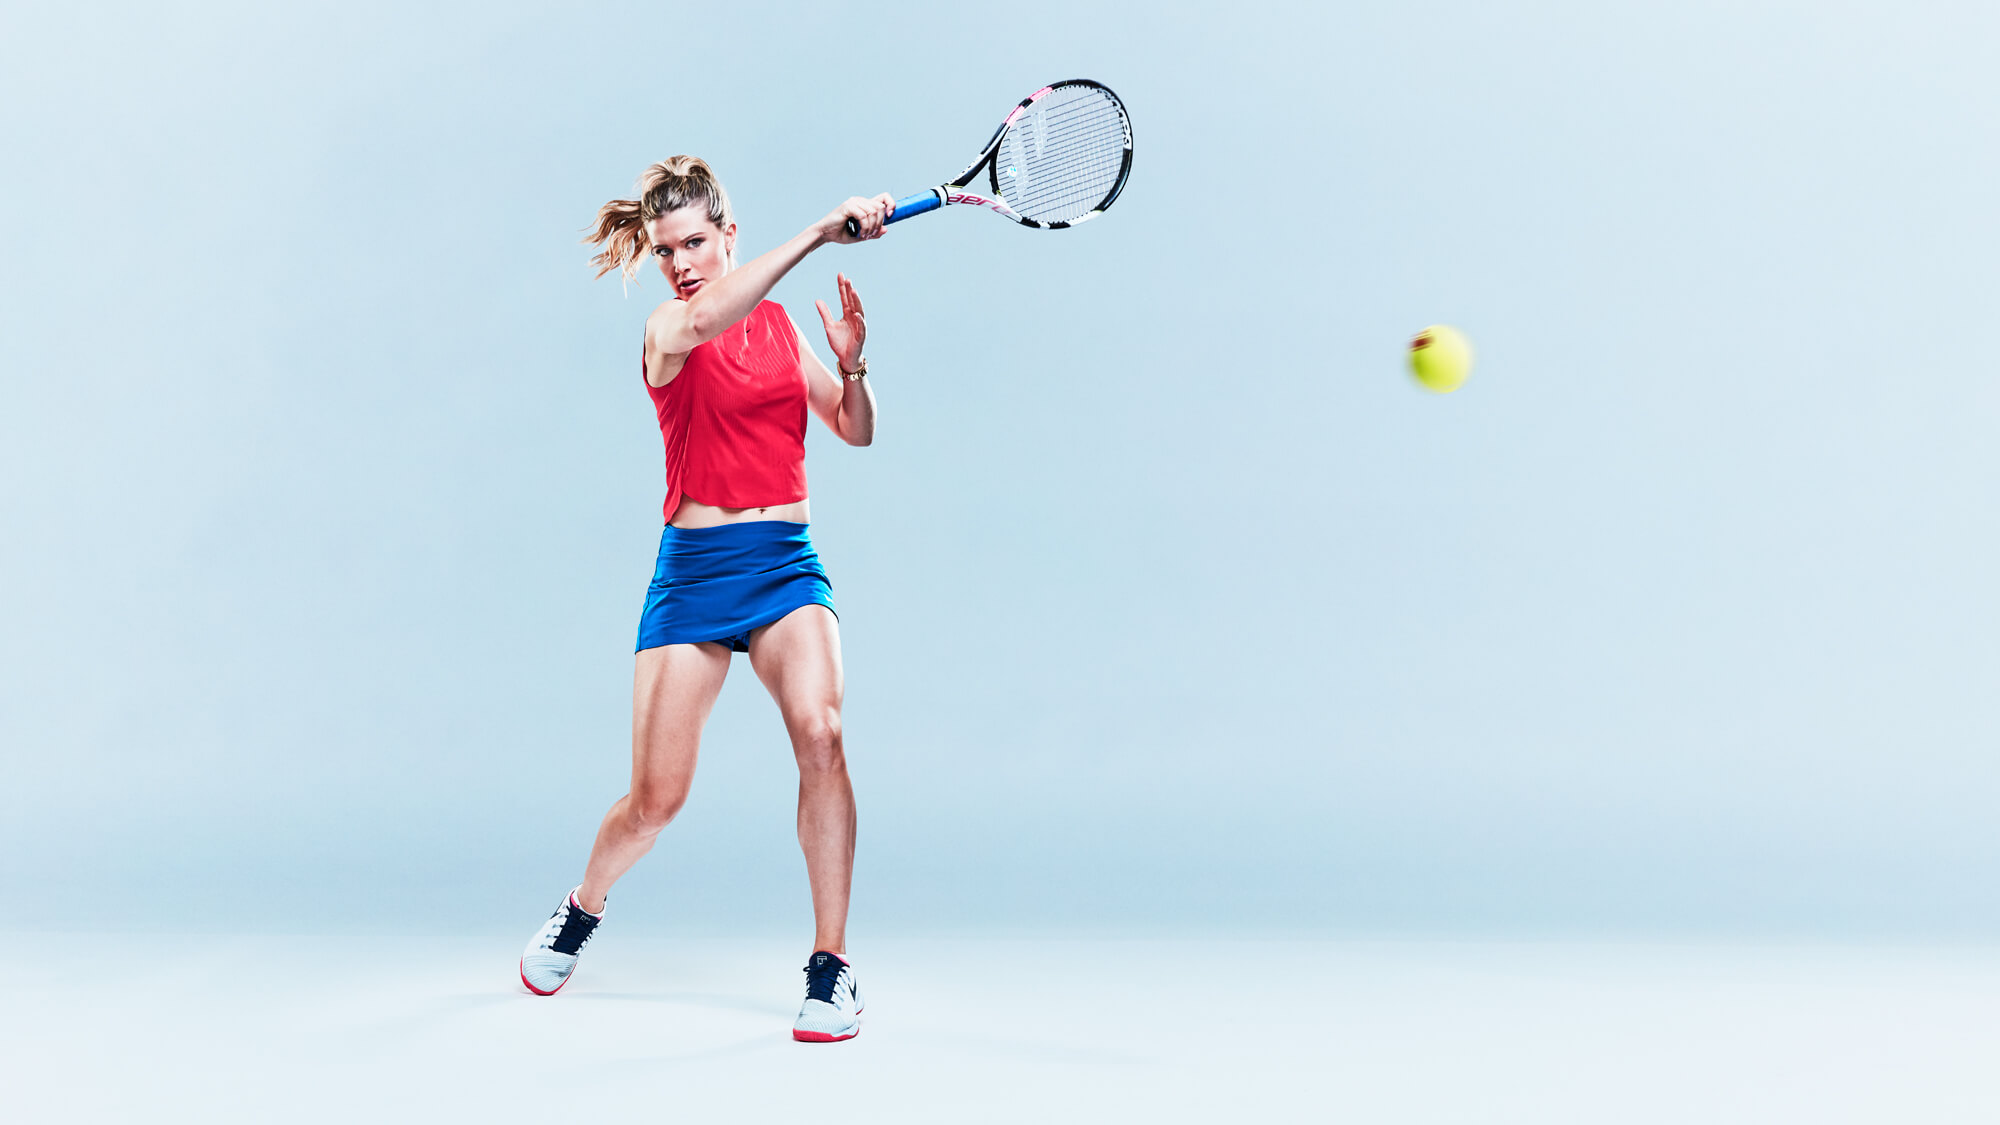 Unified Content, Unified Content Toronto, Aaron Cobb, Rogers, Sportsnet, Genie Bouchard, Portrait, Action Shot, Photography, Sports Photography, Athletes, Tennis, Athlete,